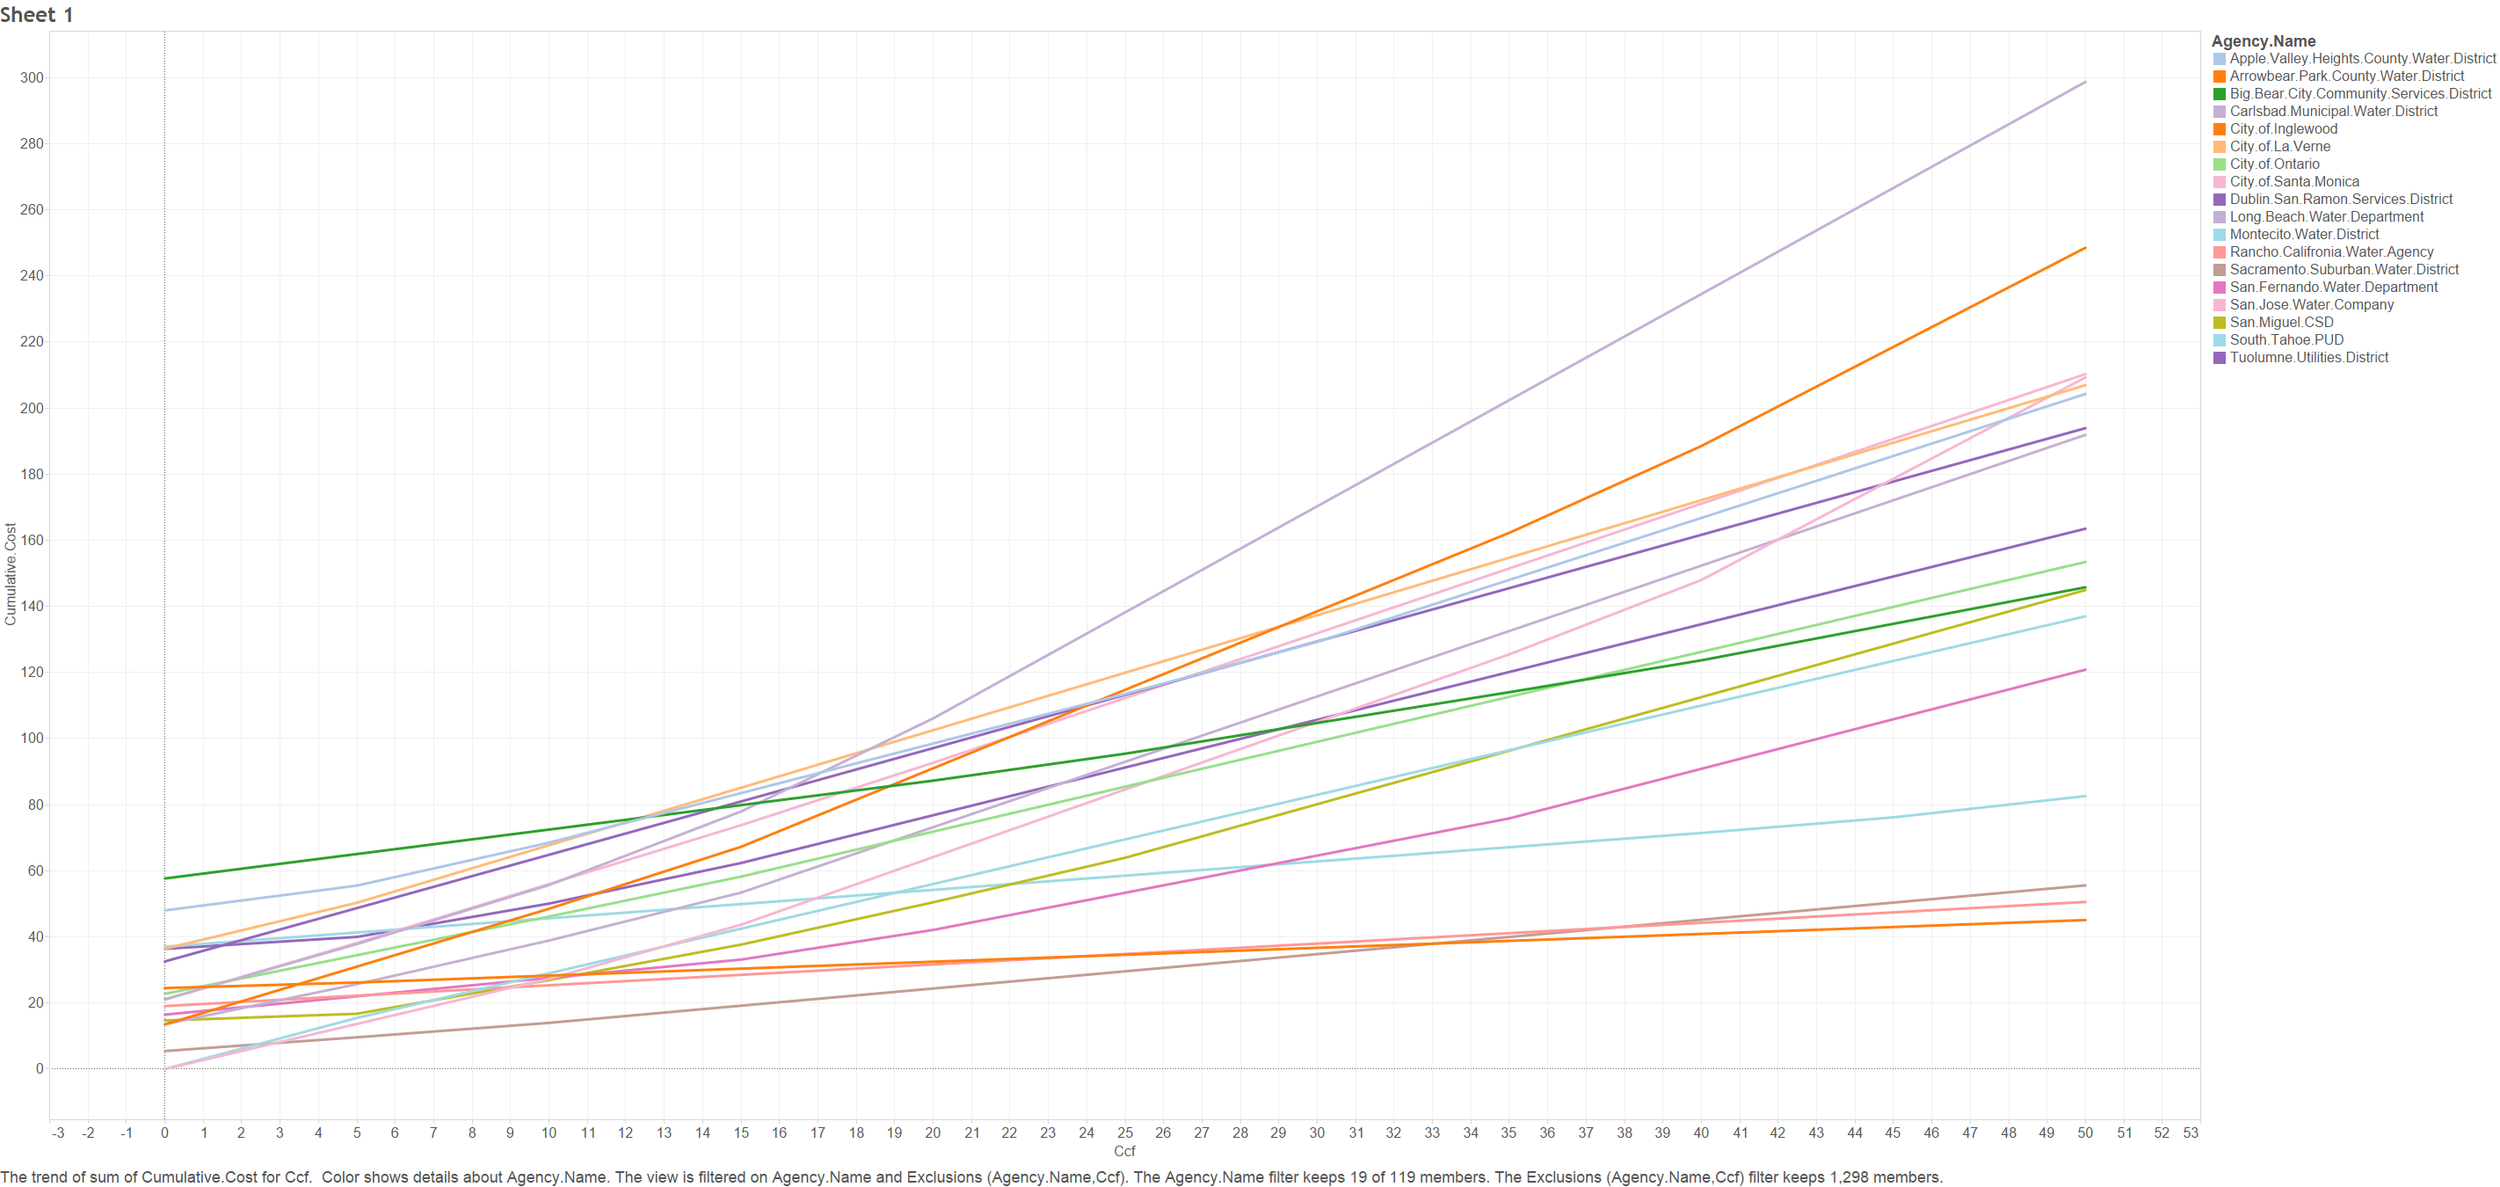 Each line shows the cumulative amounta household would pay for increasing amounts of water. Note 10x variation from the smallest to largest bill at 50 ccf.